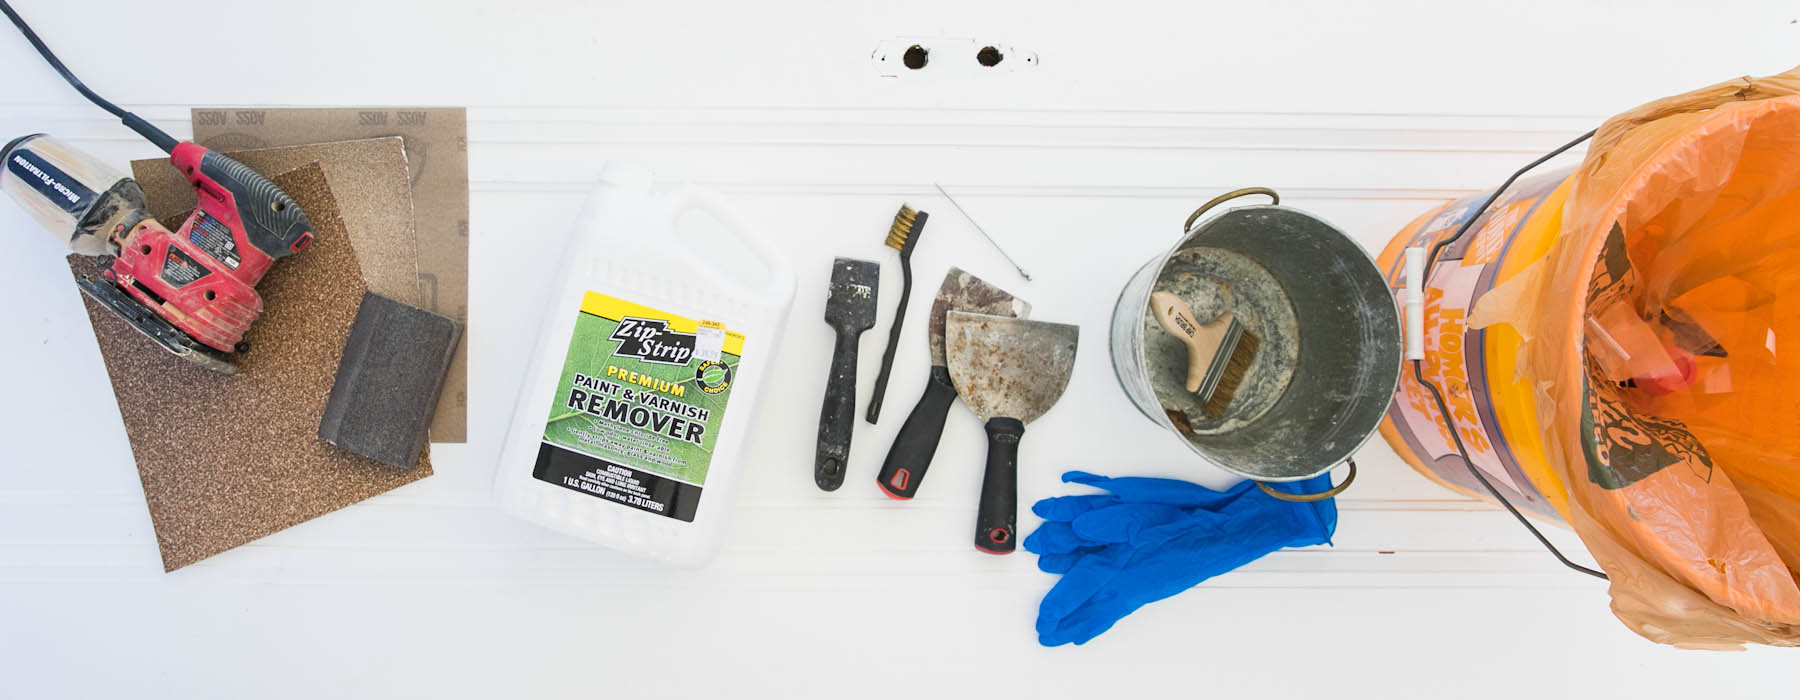 Yes You Can! How To Strip Paint From a Wood Door   Paint Stripping   Remove Paint   DIY   Jessica Brigham   Magazine Ready for Life